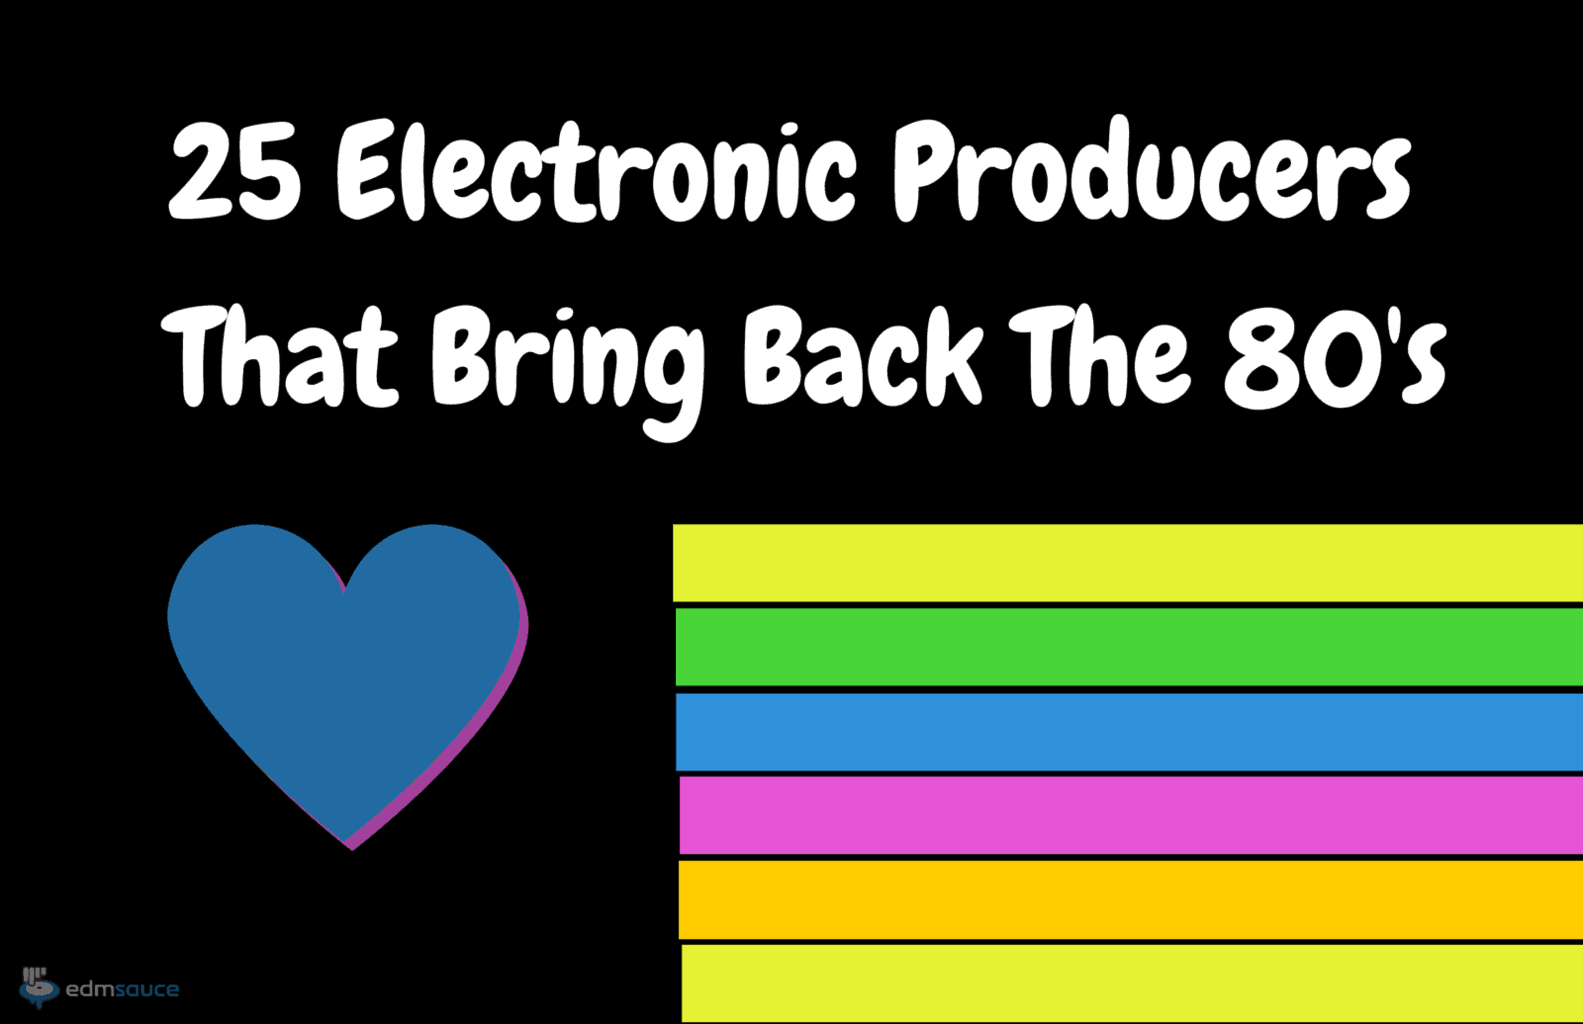 Synthwave Artists: 25 Electronic Music Artists That Bring Back The 80's